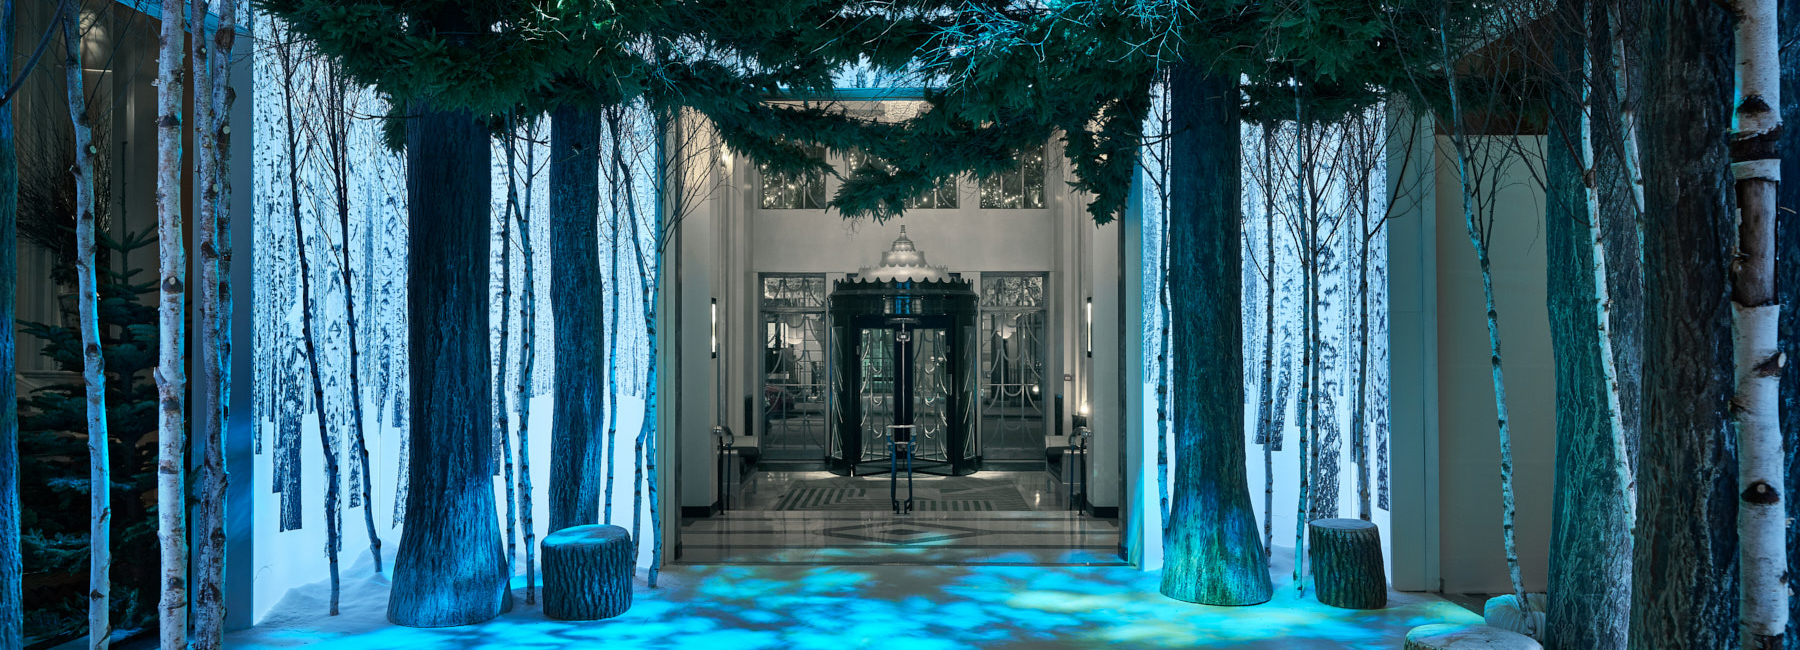 jony-ive-marc-newson-claridges-christmas-tree-2016-designboom1800.jpg